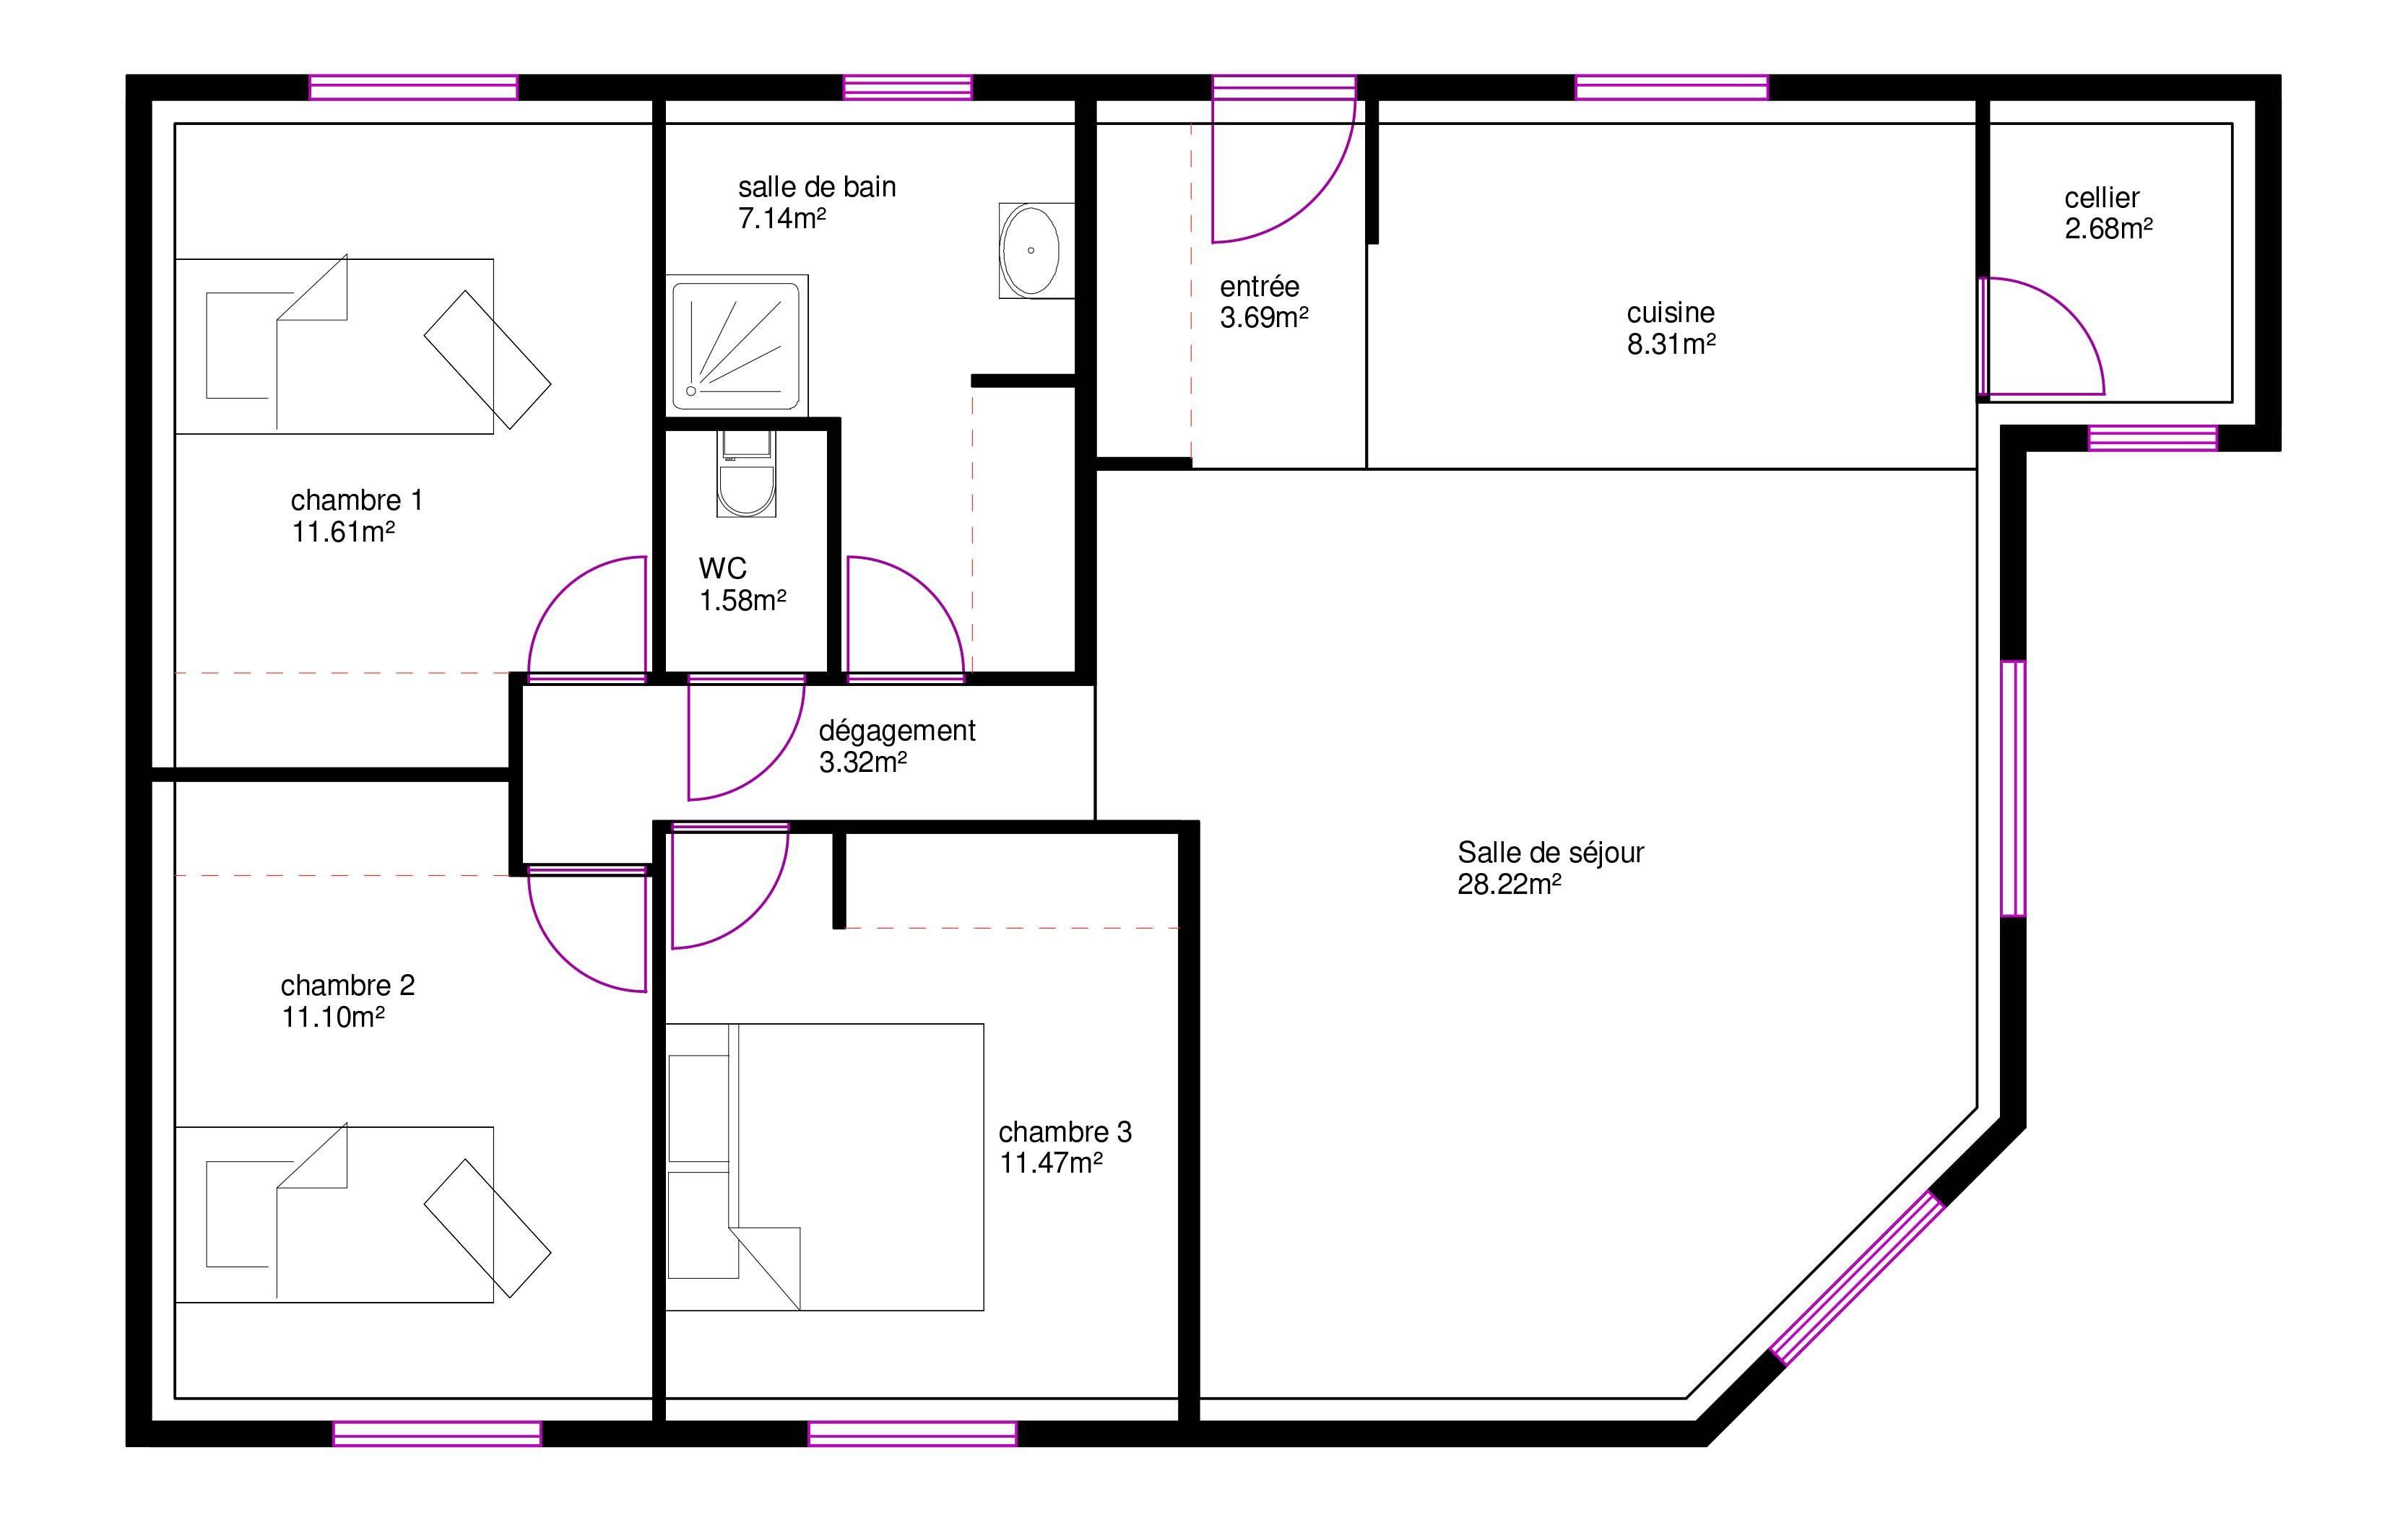 Awesome Plan Maison Kit That You Must Know You Re In Good Company If You Re Looking For Plan Maison Kit Good Company How To Plan Floor Plans